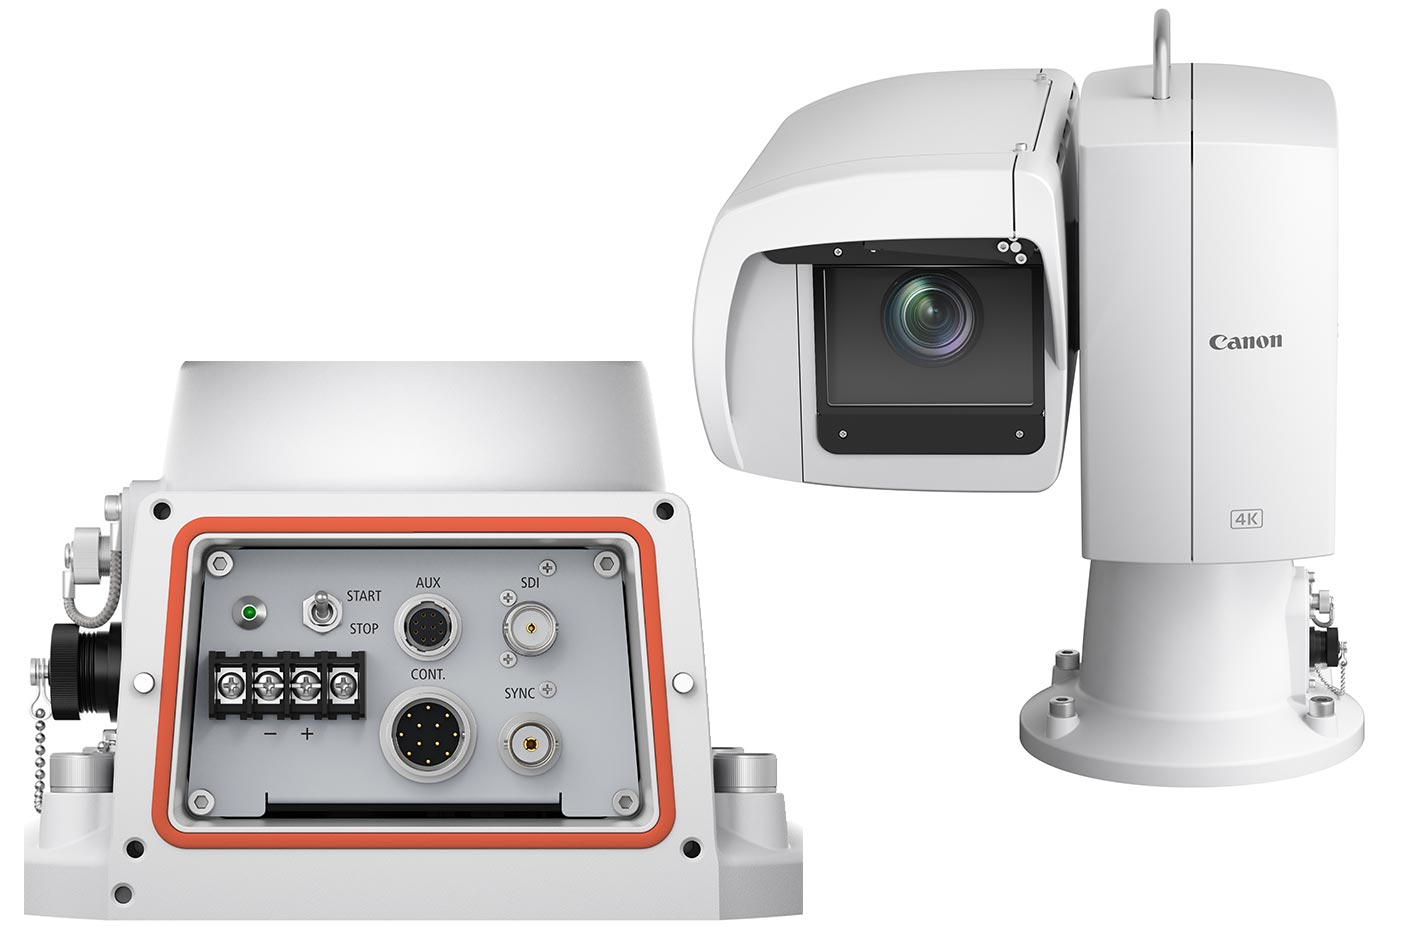 Canon's first line of 4K UHD PTZ cameras